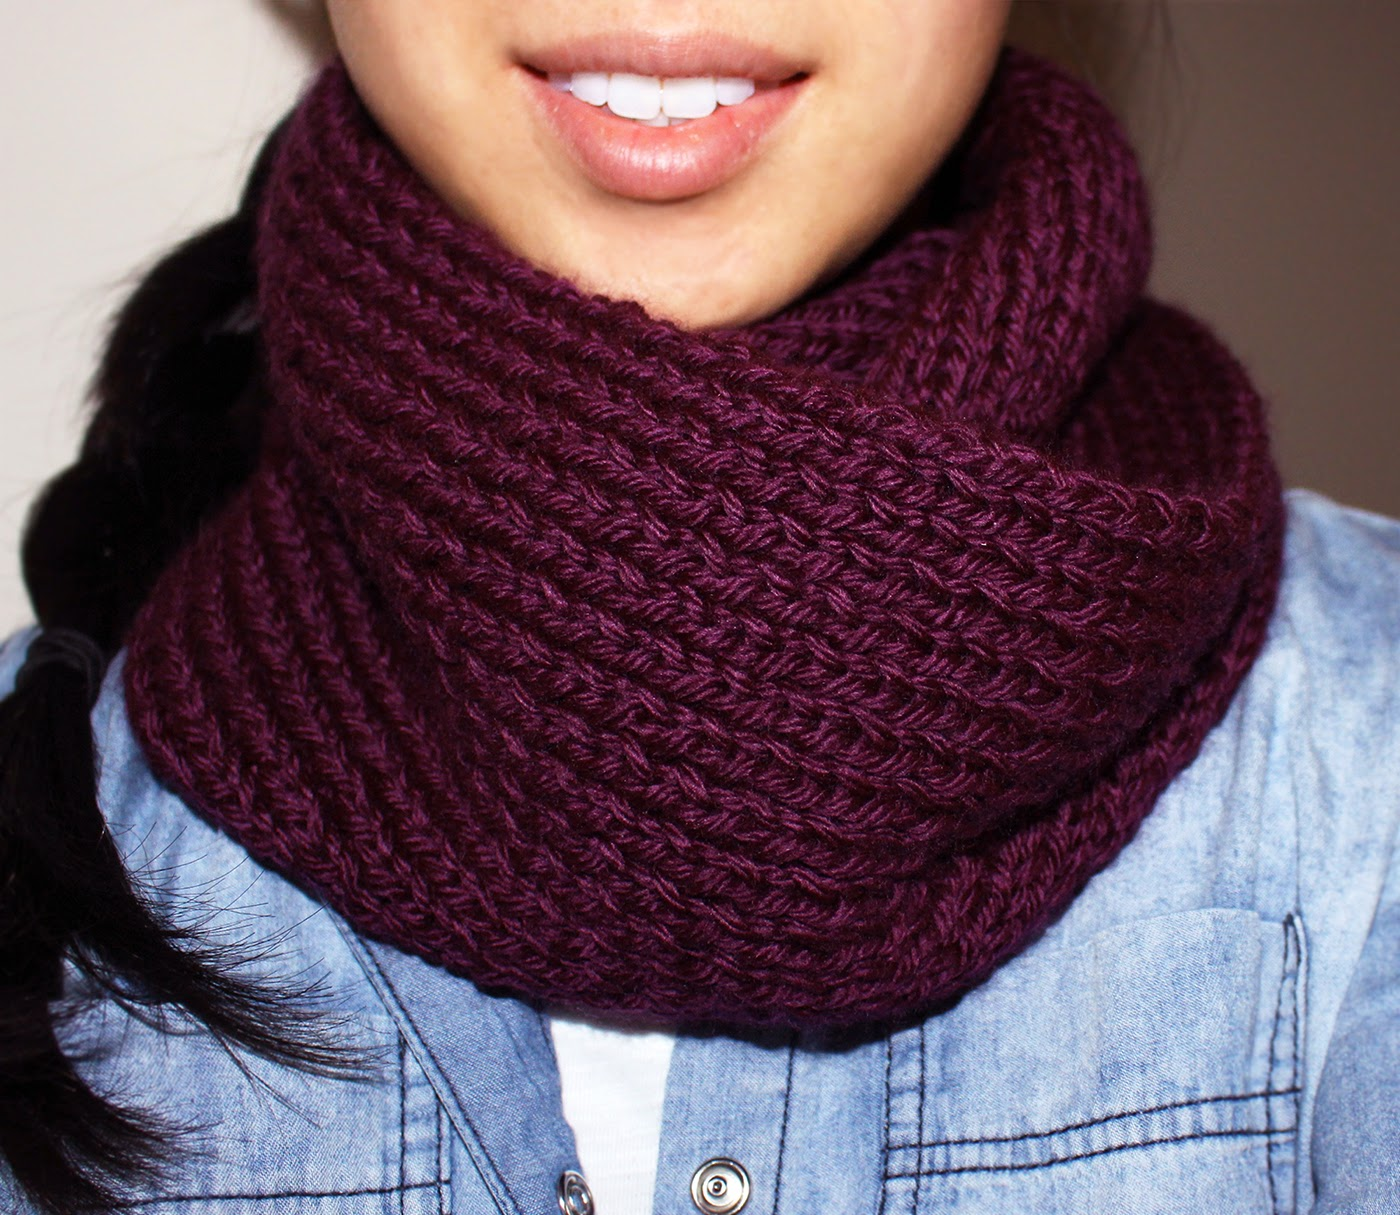 Purllin Acai Infinity Circle Scarf free knitting pattern How To Knit An Infinity Scarf Pattern